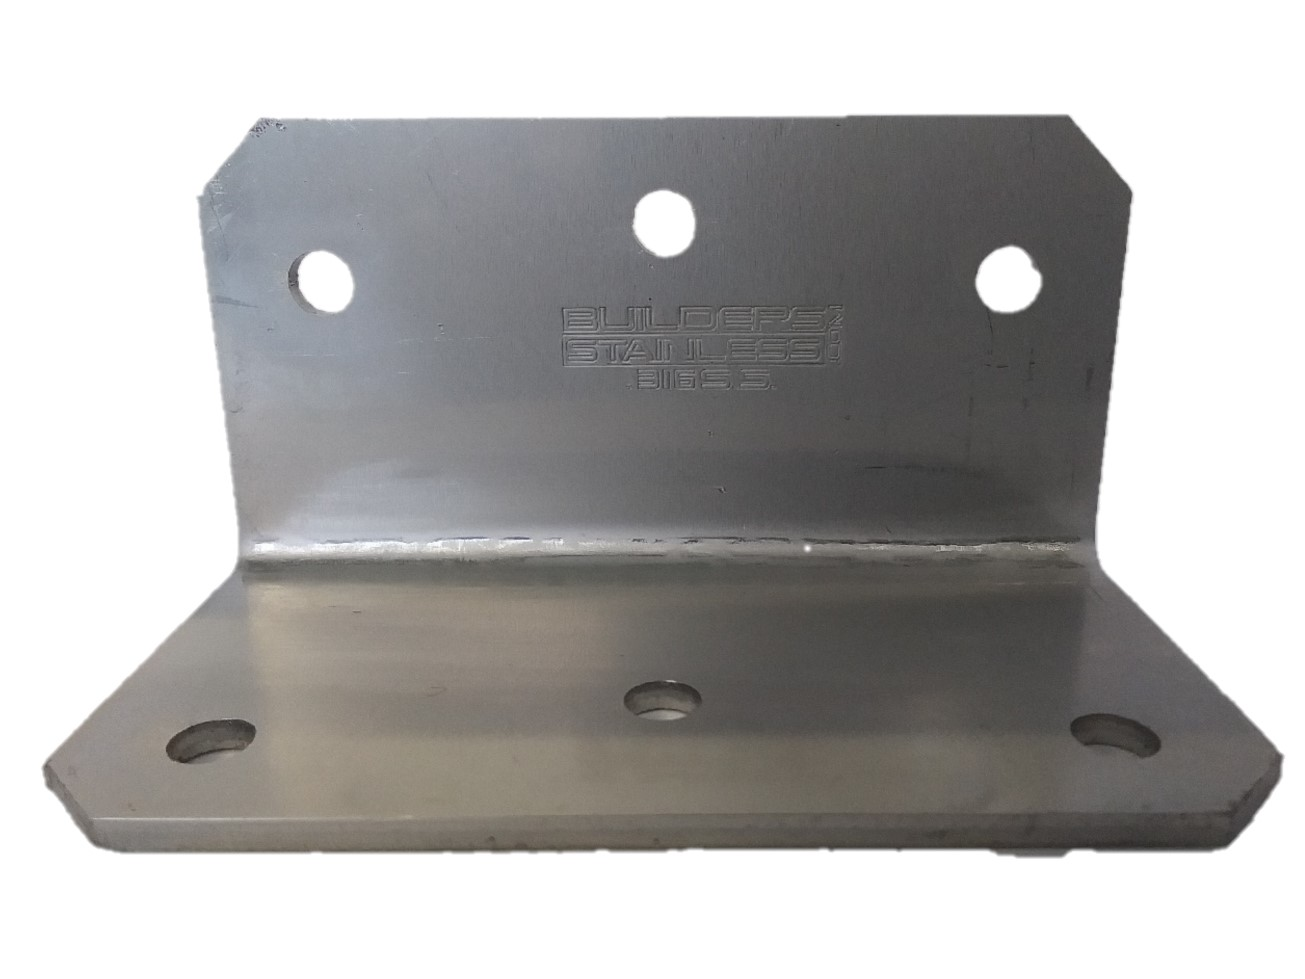 4 x 2 x 2 x 1/8 Angle Bracket 316 Stainless Steel SA422